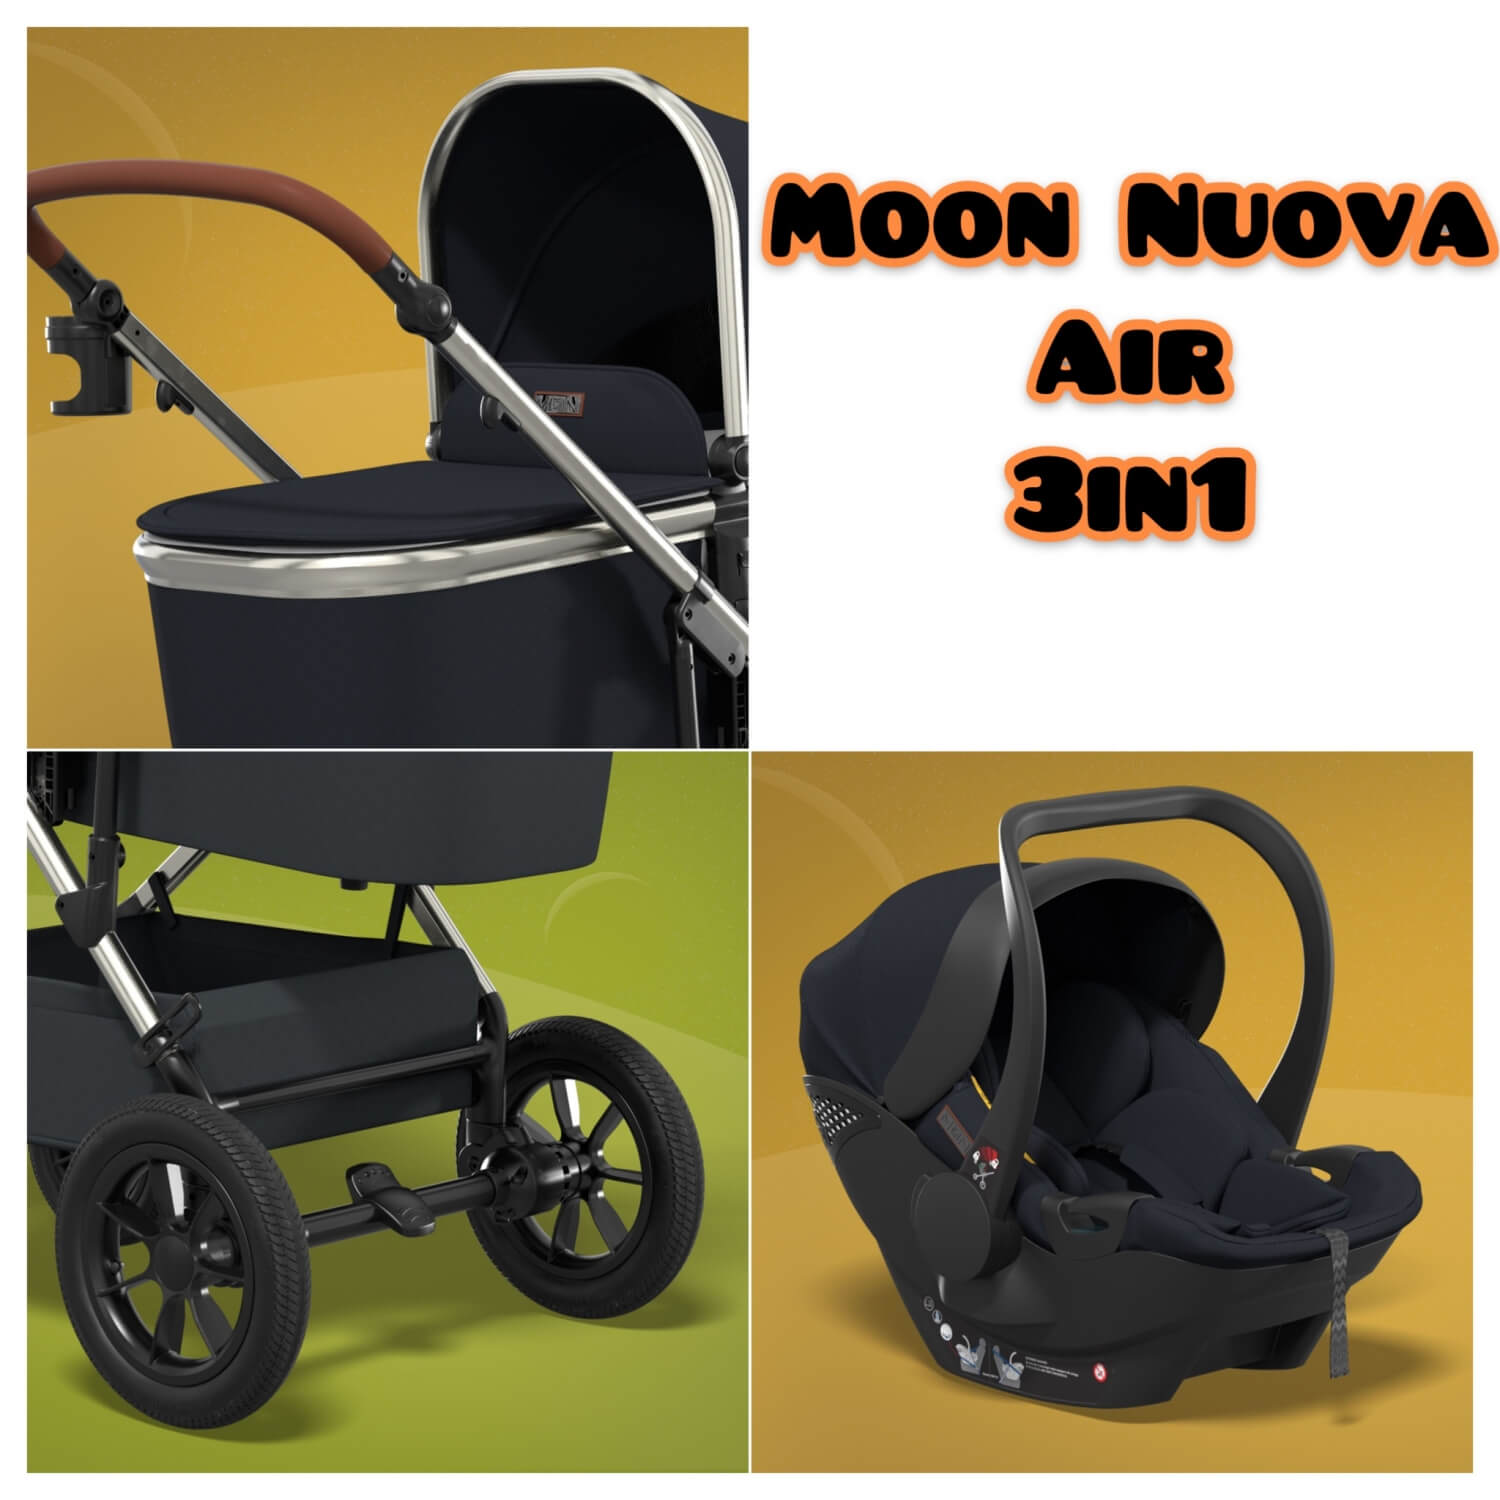 Moon Nuova Air 3in1